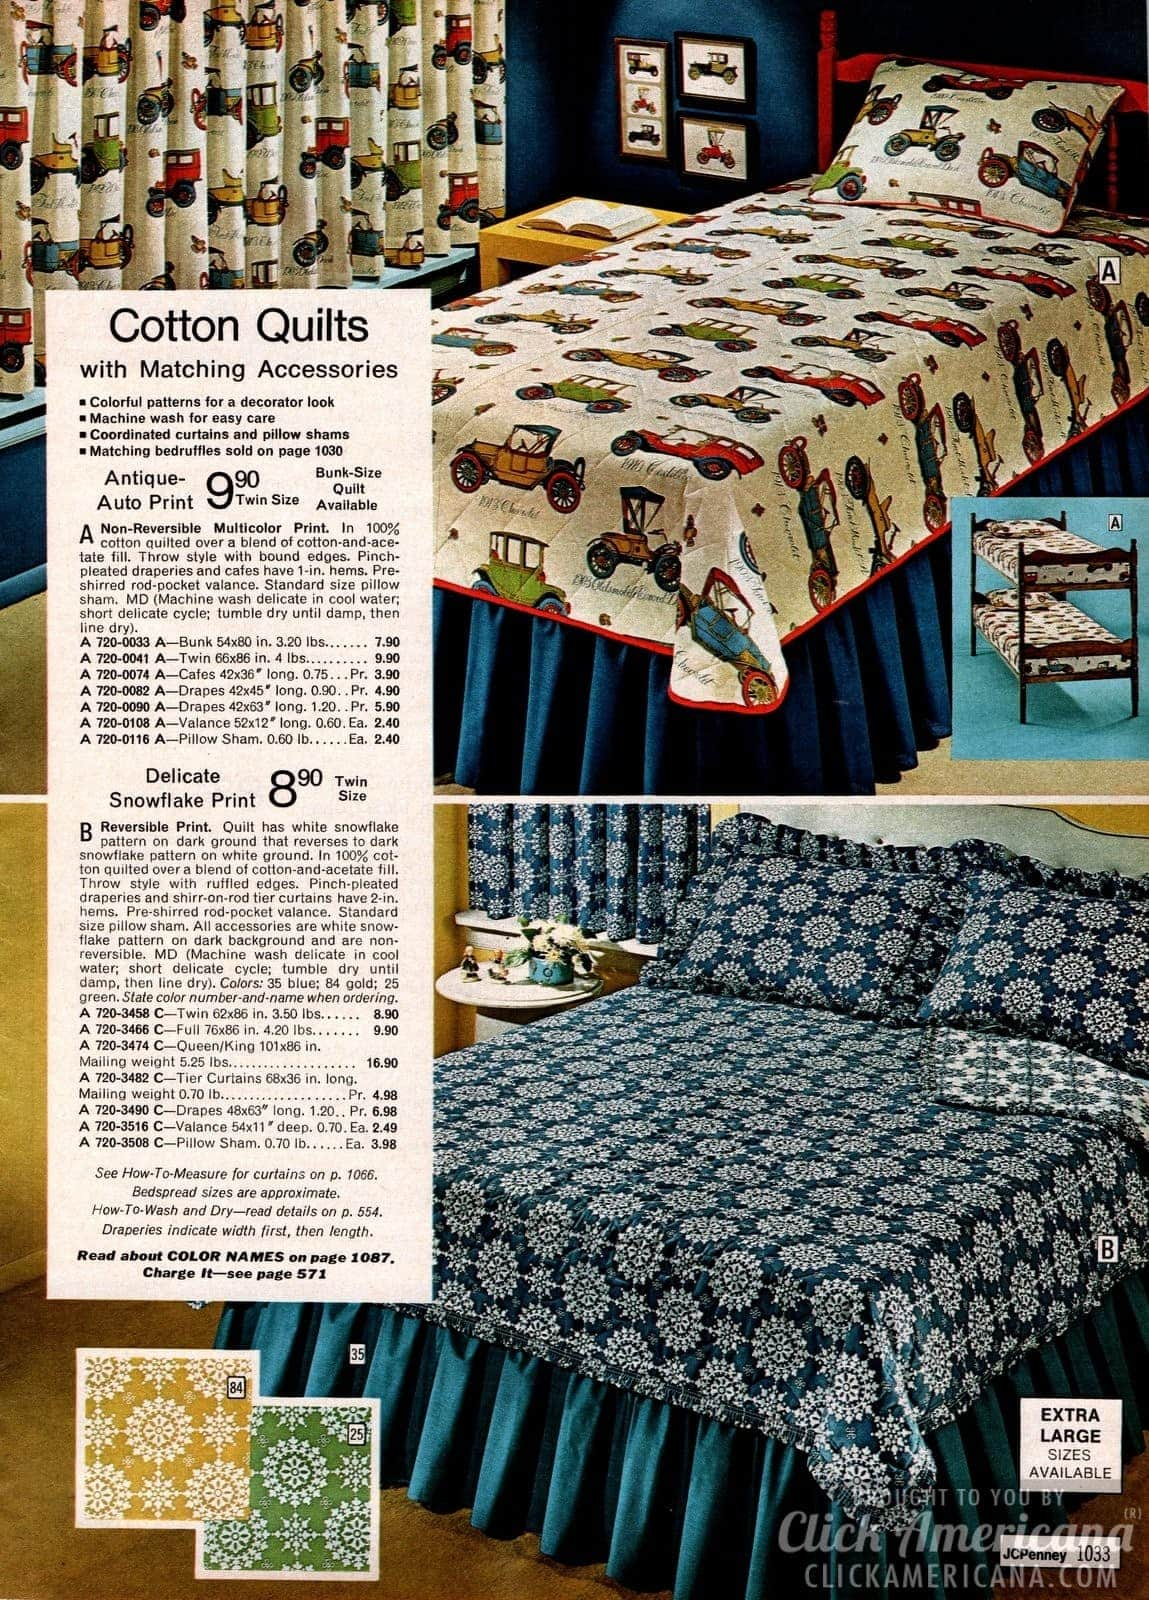 Cotton quilts with matching accessories - Antique autos and snowflake prints